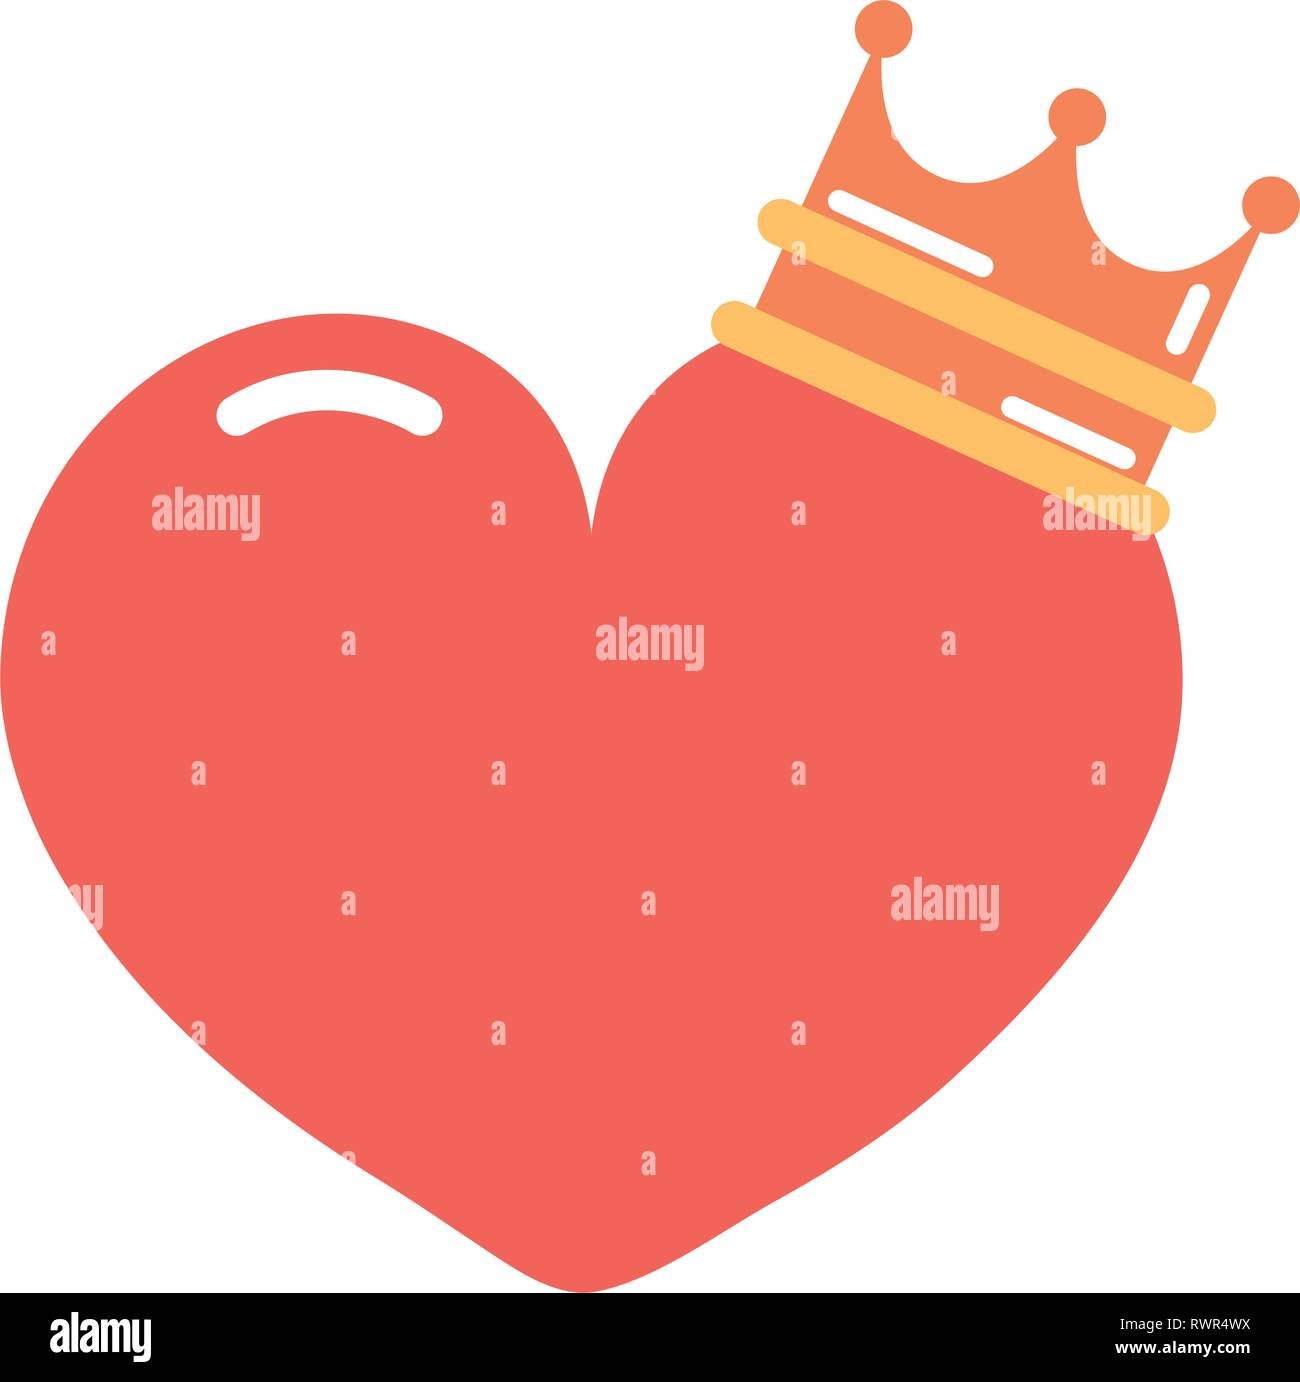 Heart Crown Cartoon Girl Power Vector Illustration Stock Vector Image Art Alamy Brown crown illustration, cartoon queen crown transparent background png clipart. alamy